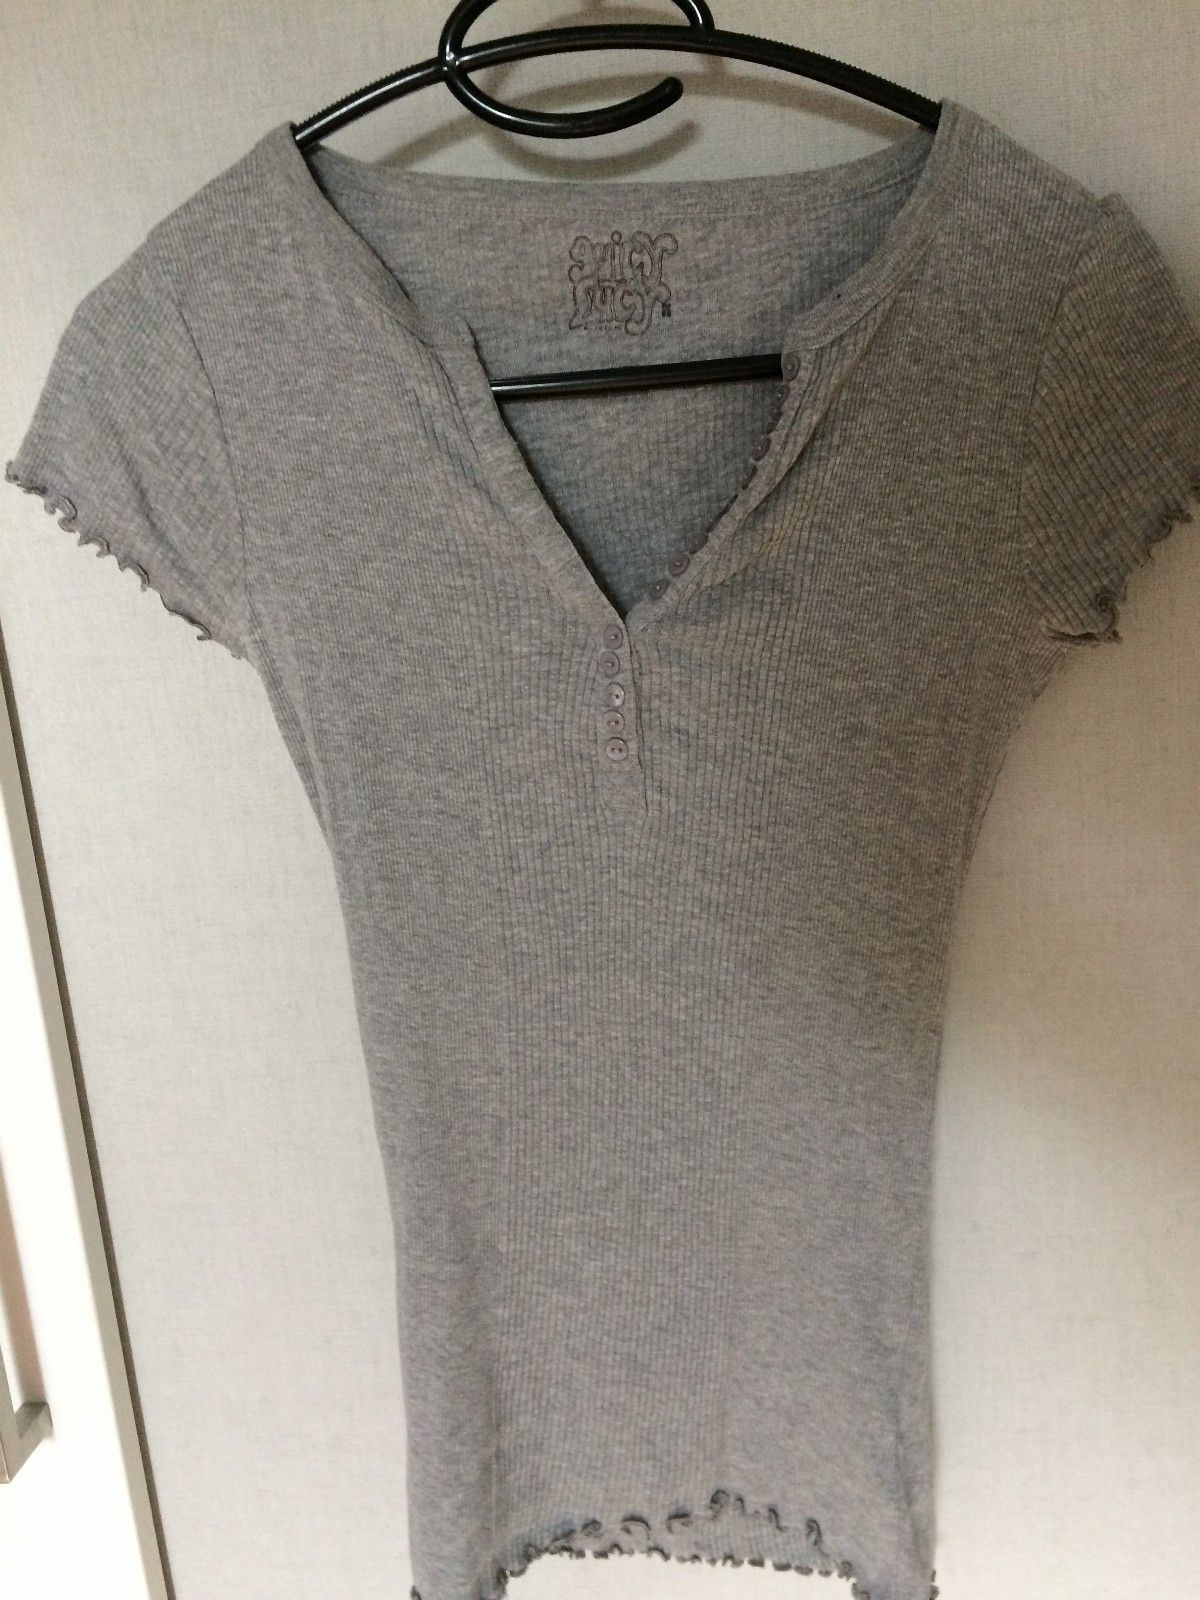 Shirt size s/m - Stavanger  - Shirt size s/m  We can discuss about price. - Stavanger